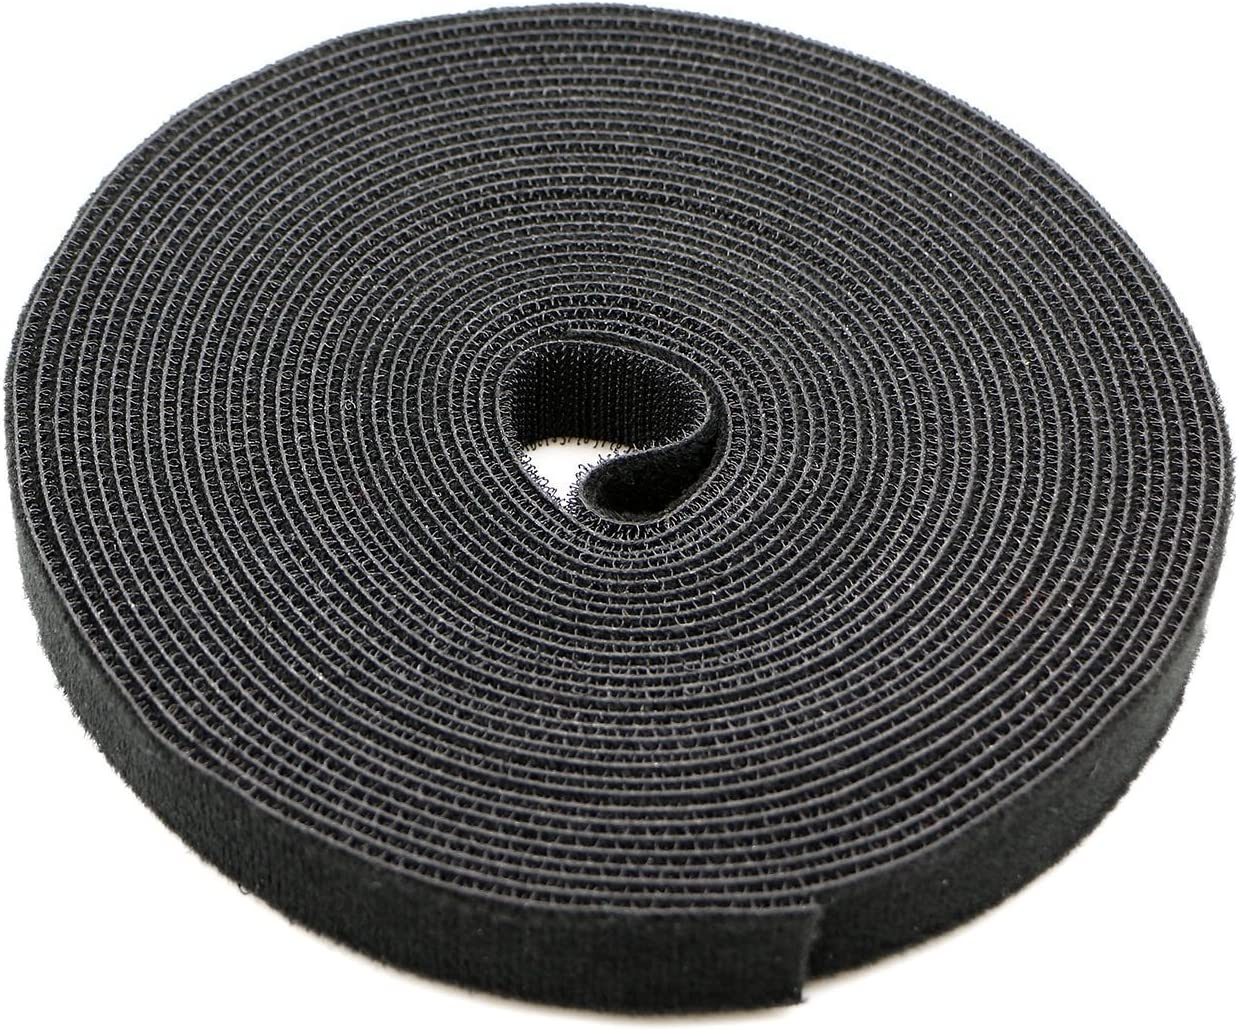 Saisn Reusable Fastening Tape Cable Ties 3/4 Inch Double Side Hook Roll (10 Yard, Black)